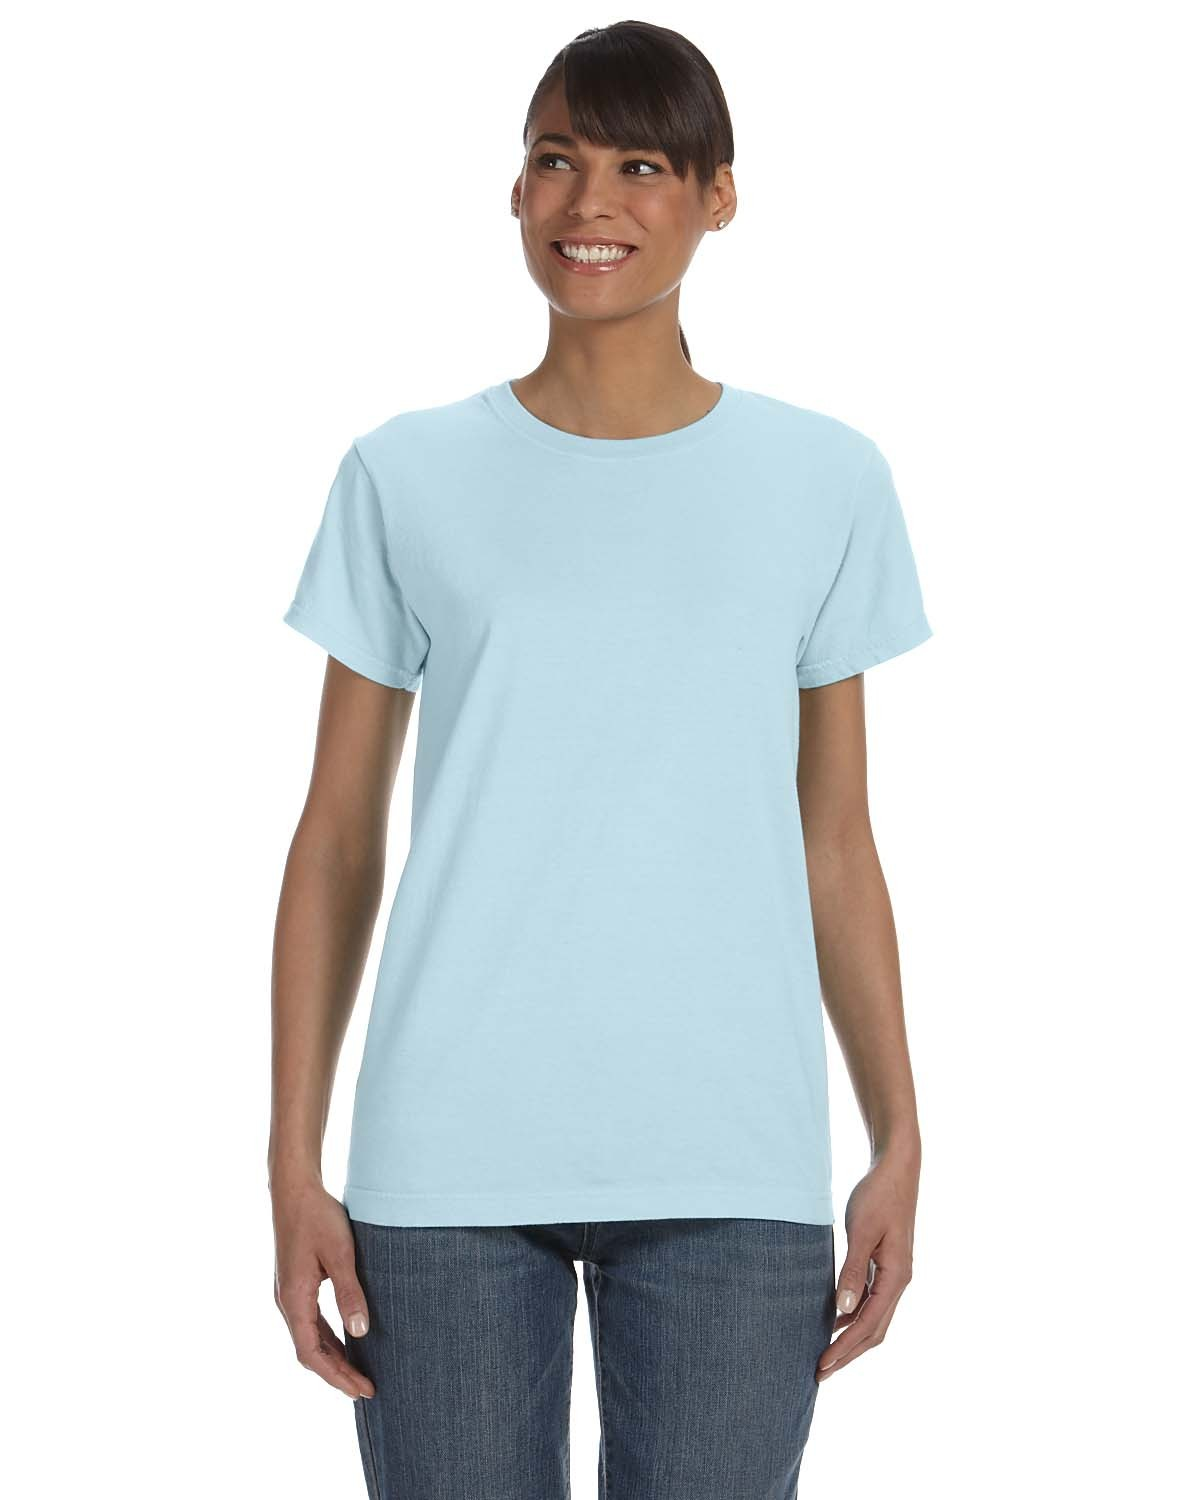 C3333 Comfort Colors CHAMBRAY